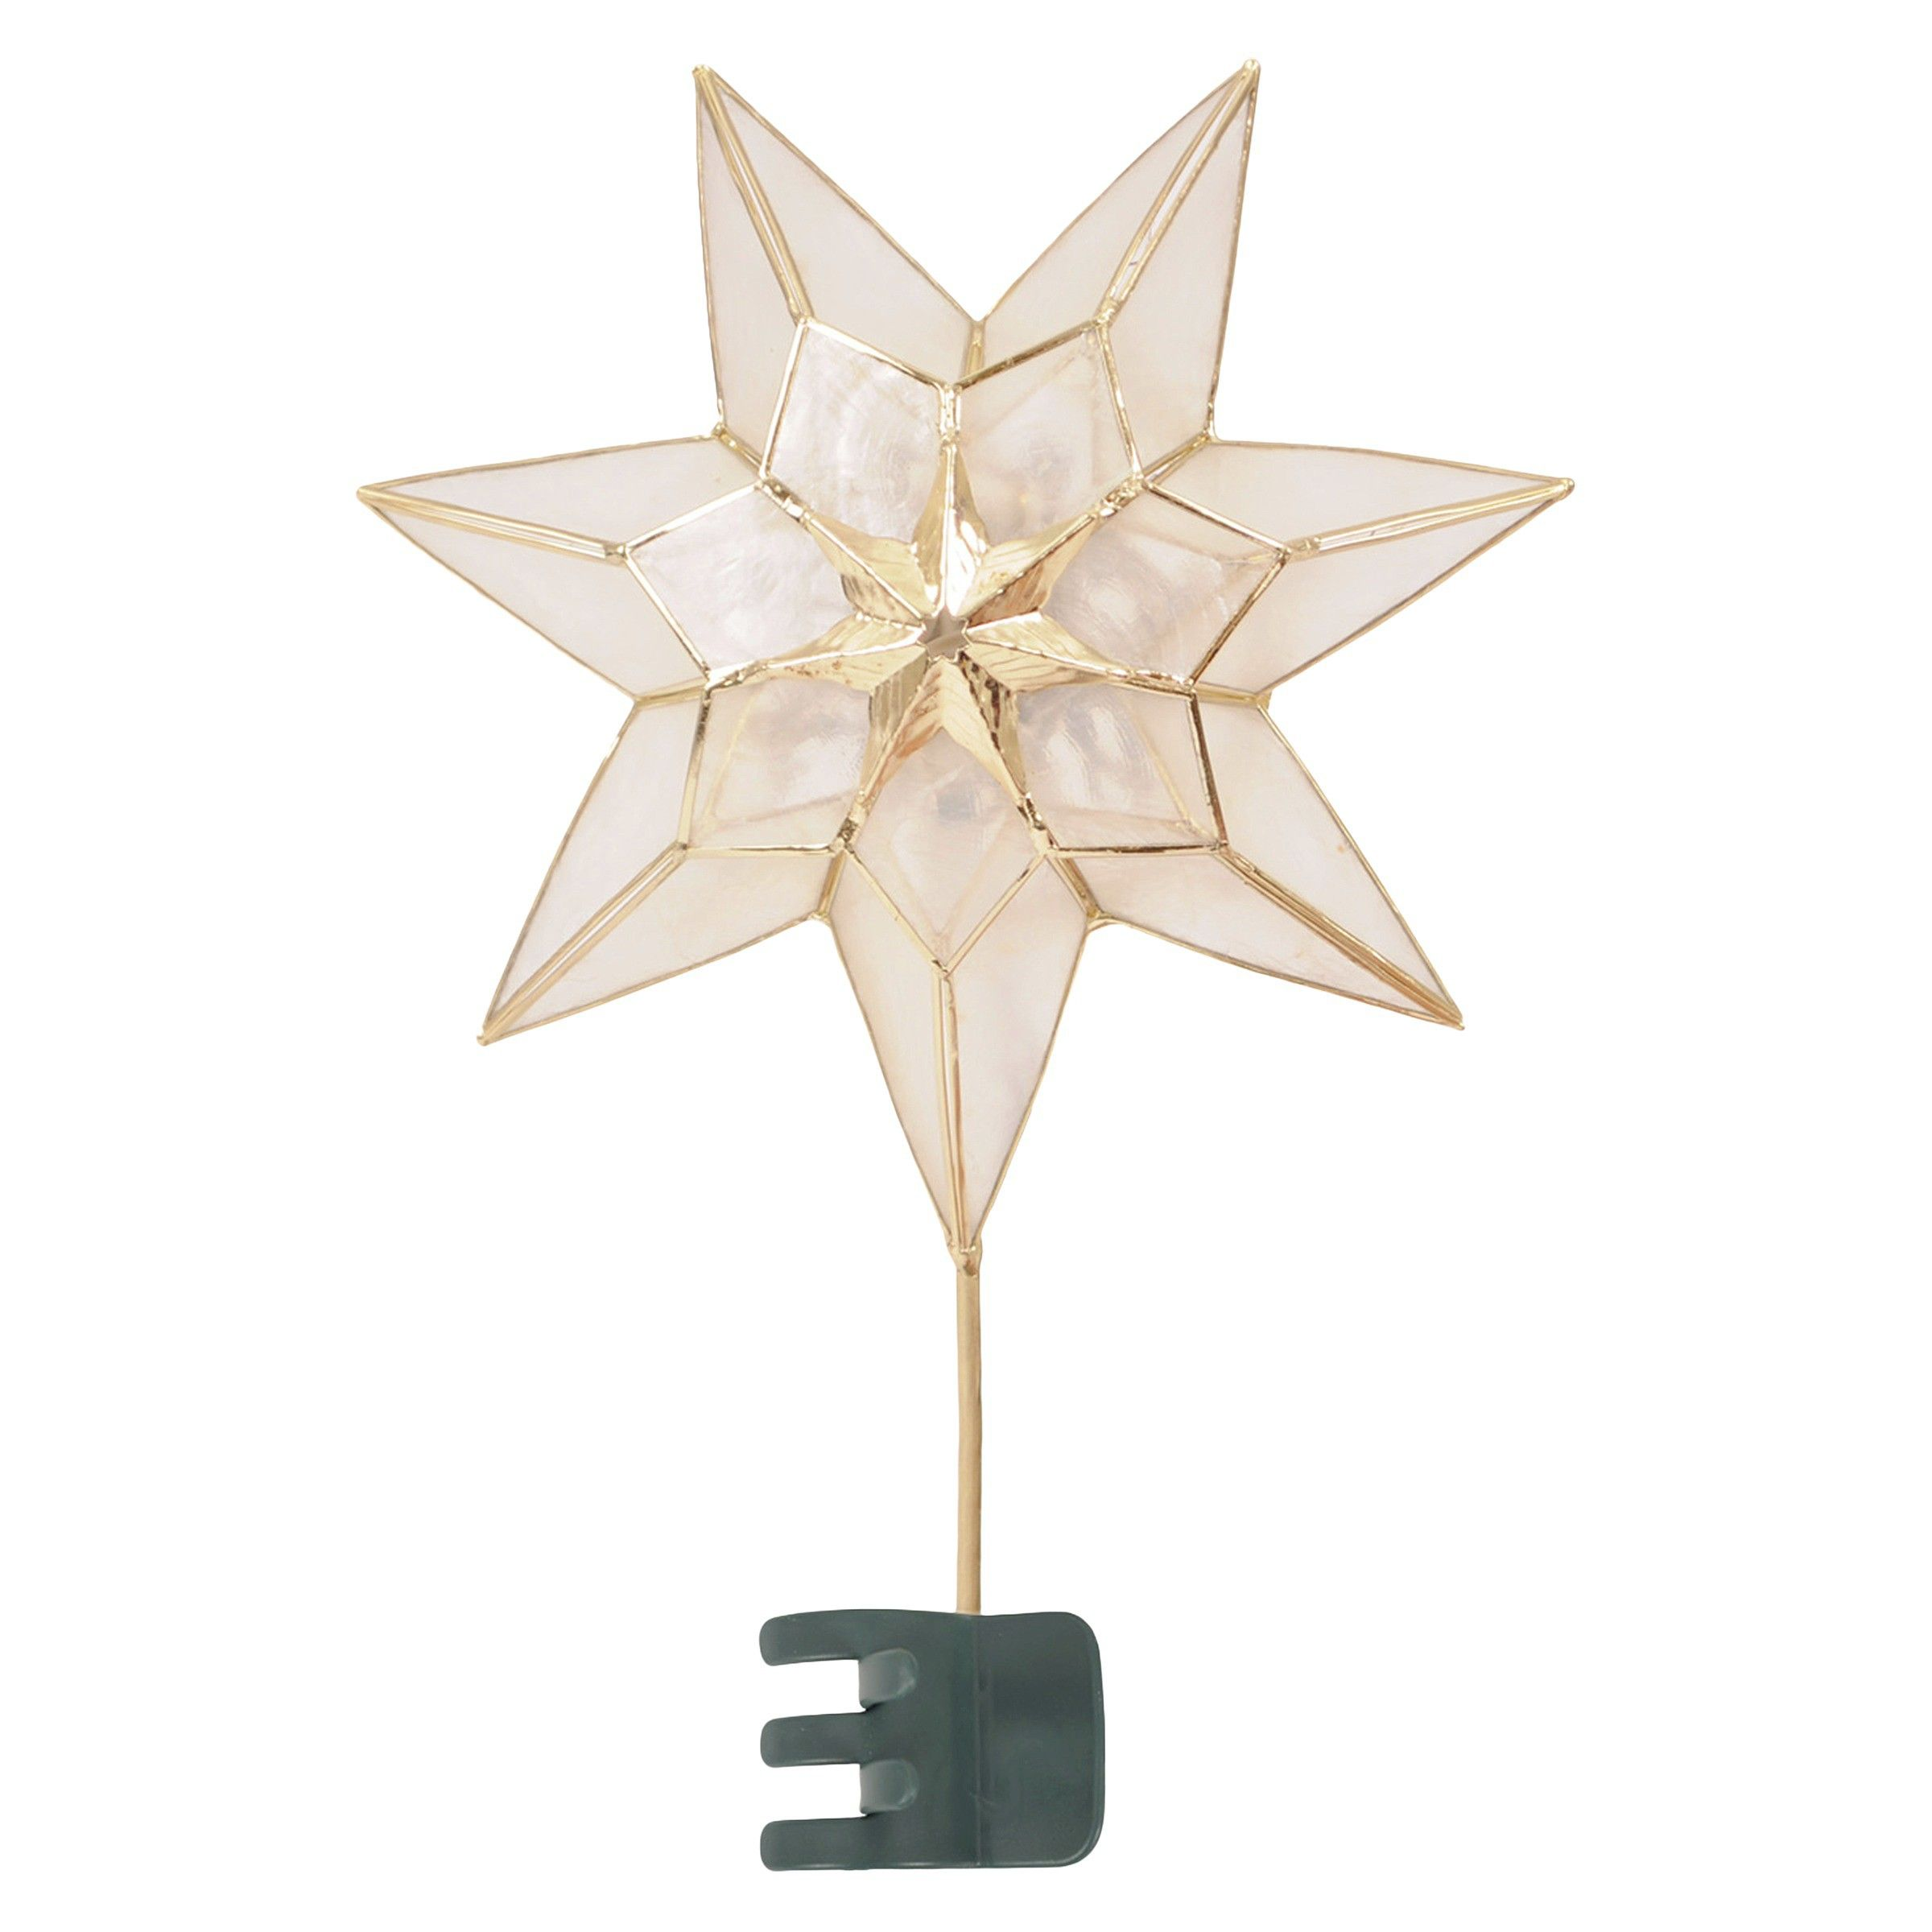 Lit Christmas Tree Topper - Gold Star : Target | holiday decor ...